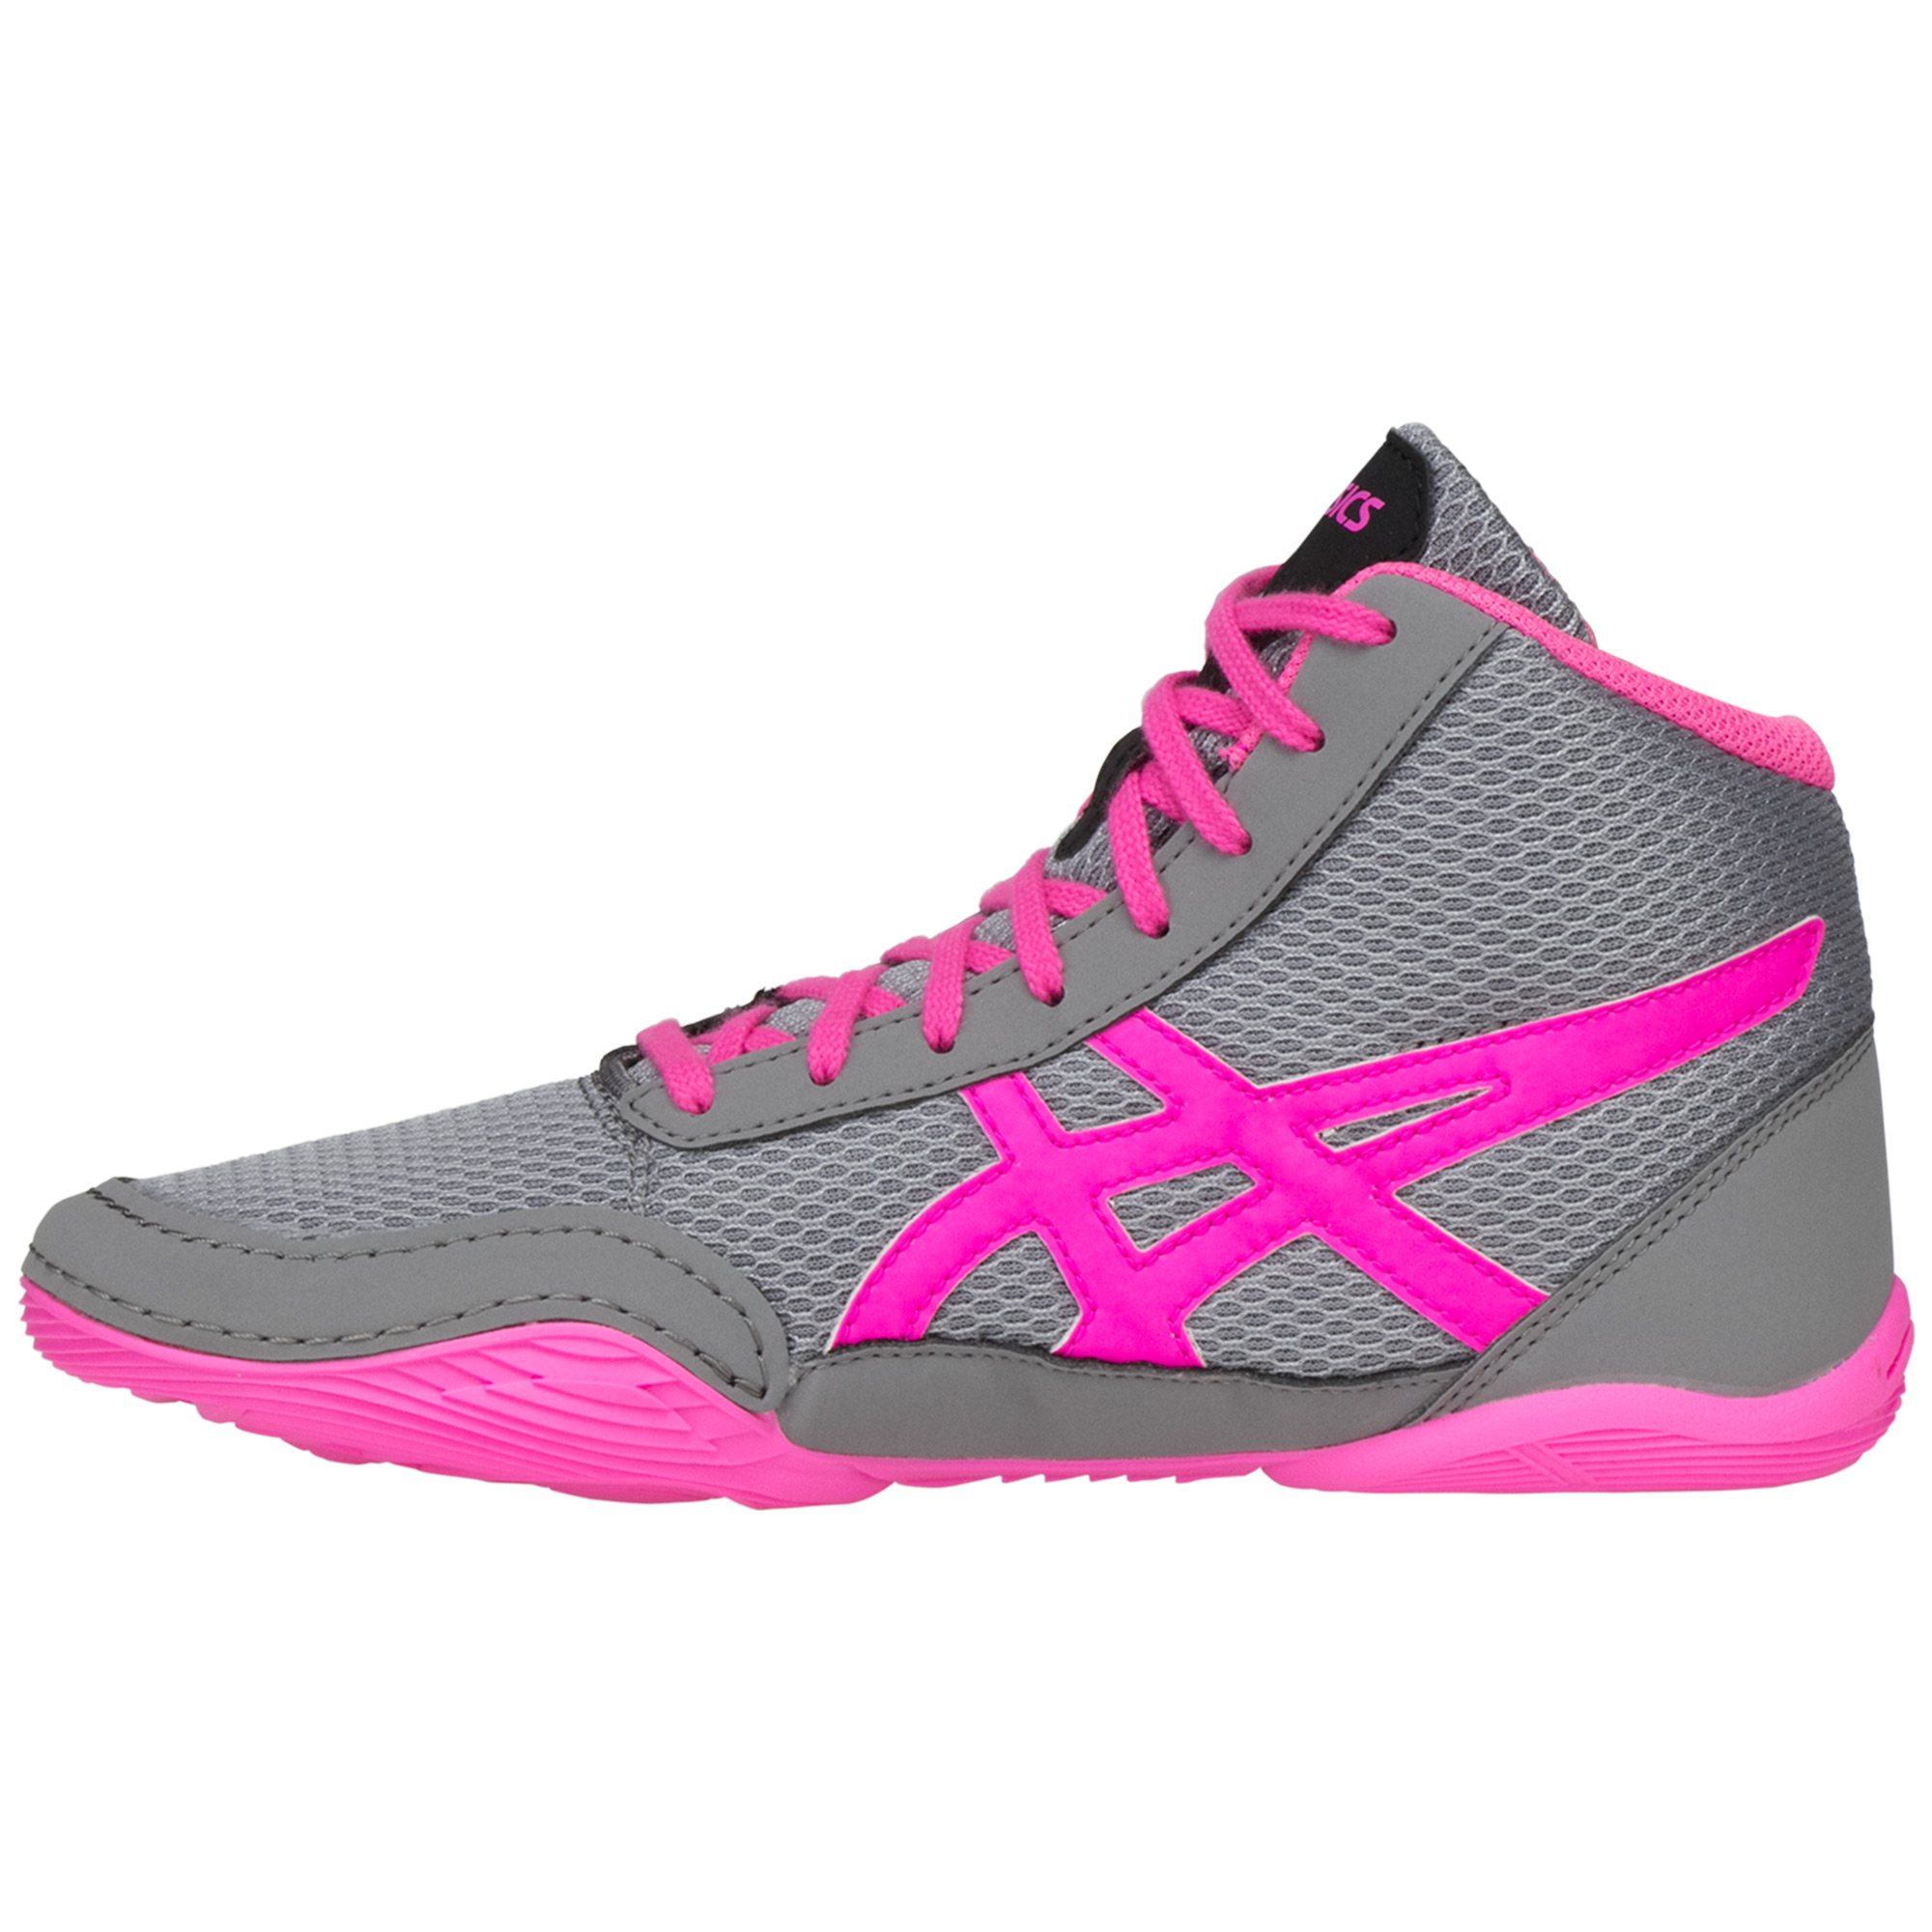 Wrestling Shoes Youth Size